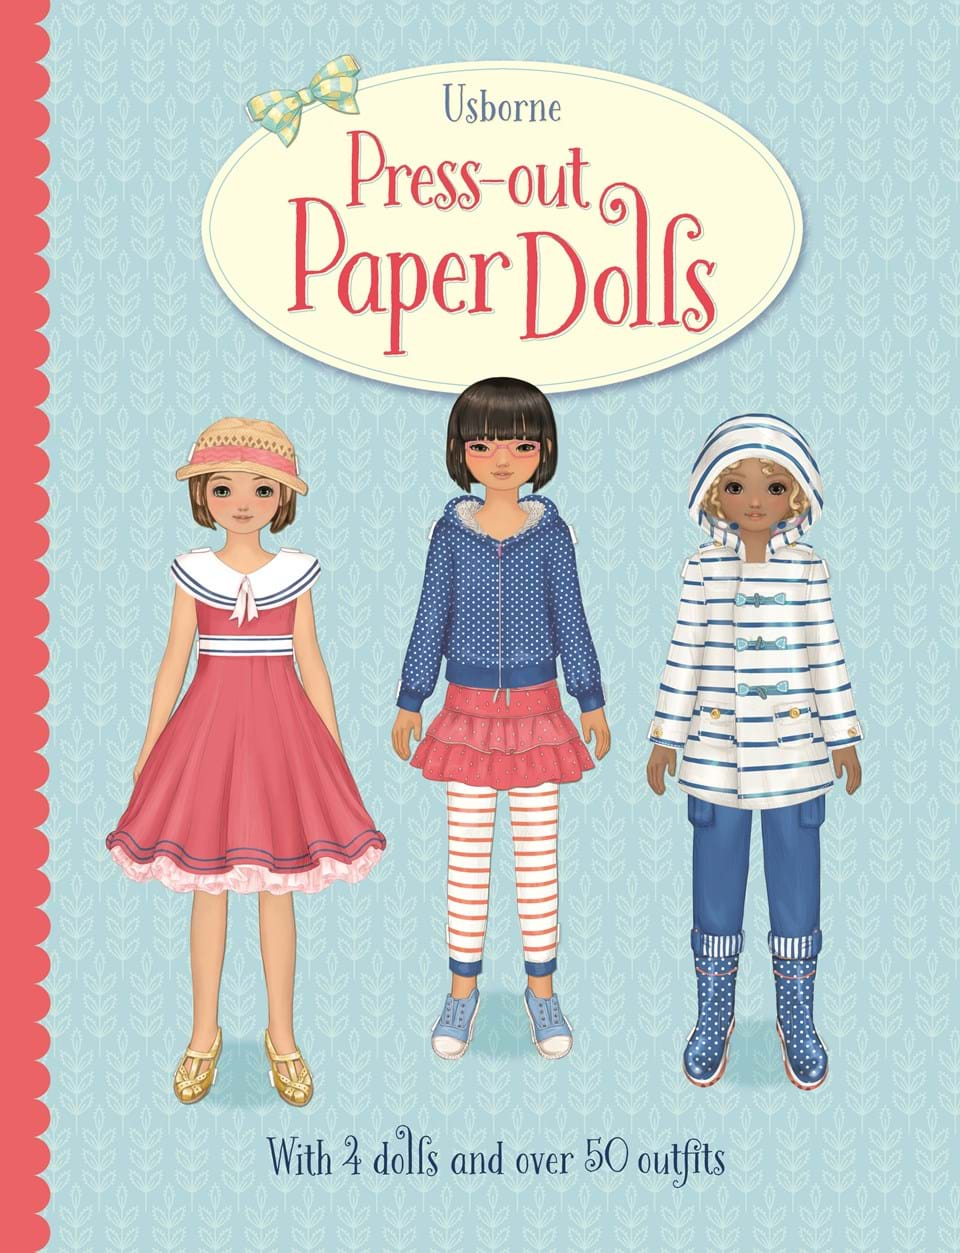 Press-out Paper Dolls 1